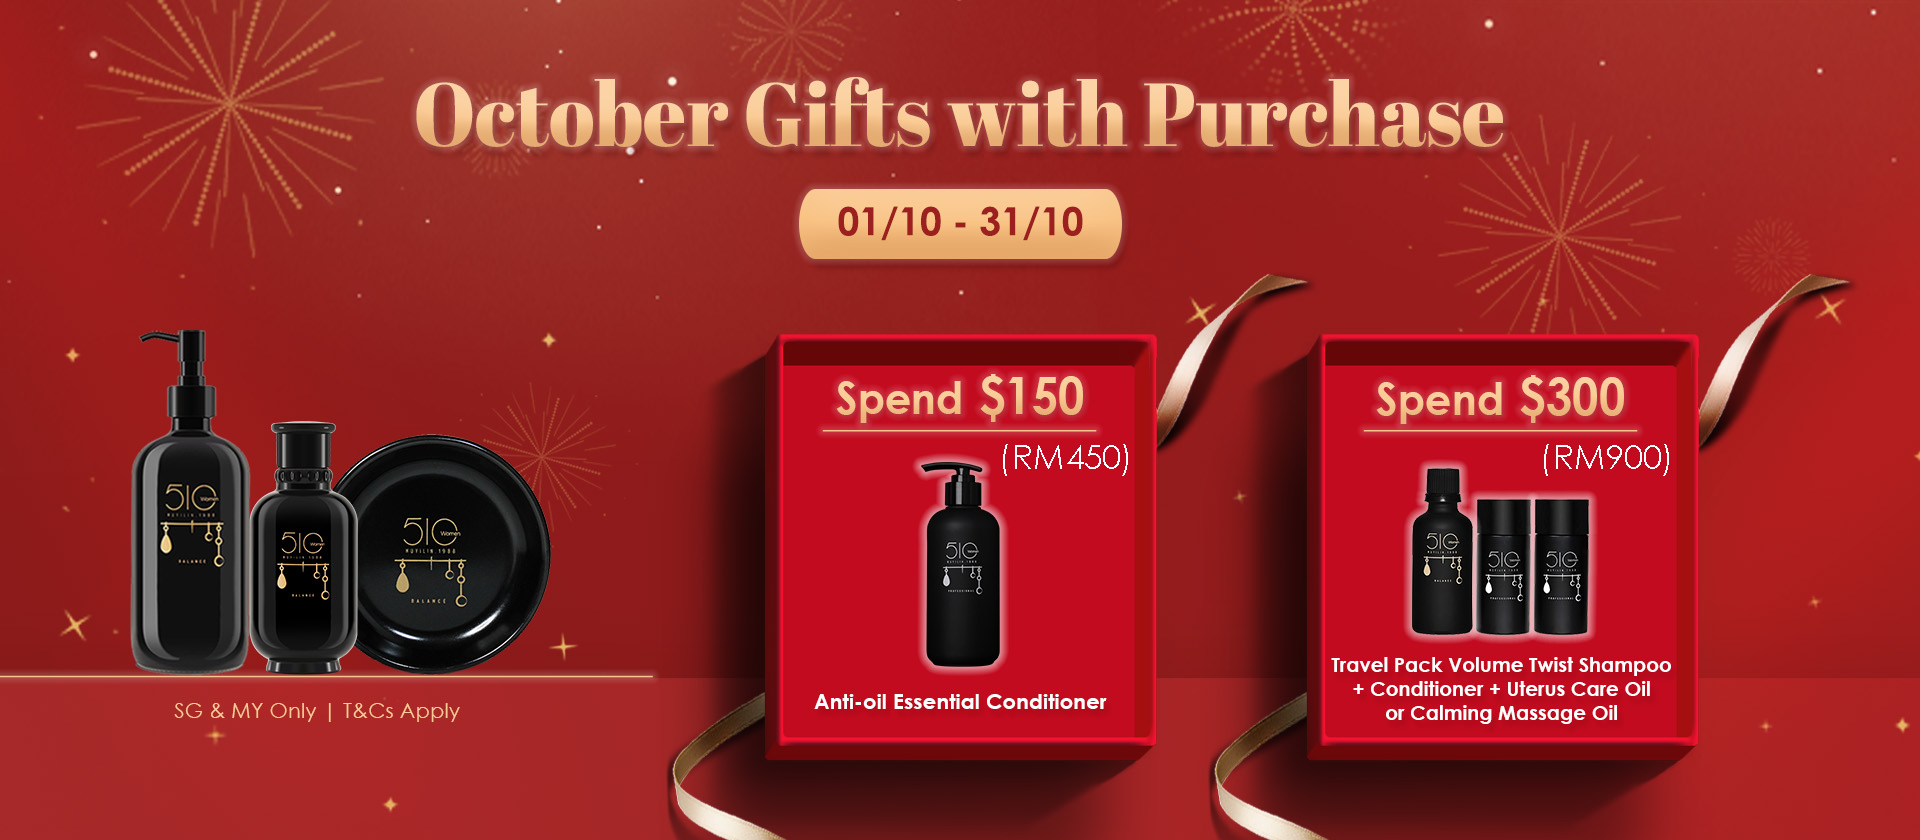 October Gifts with Purchase-main